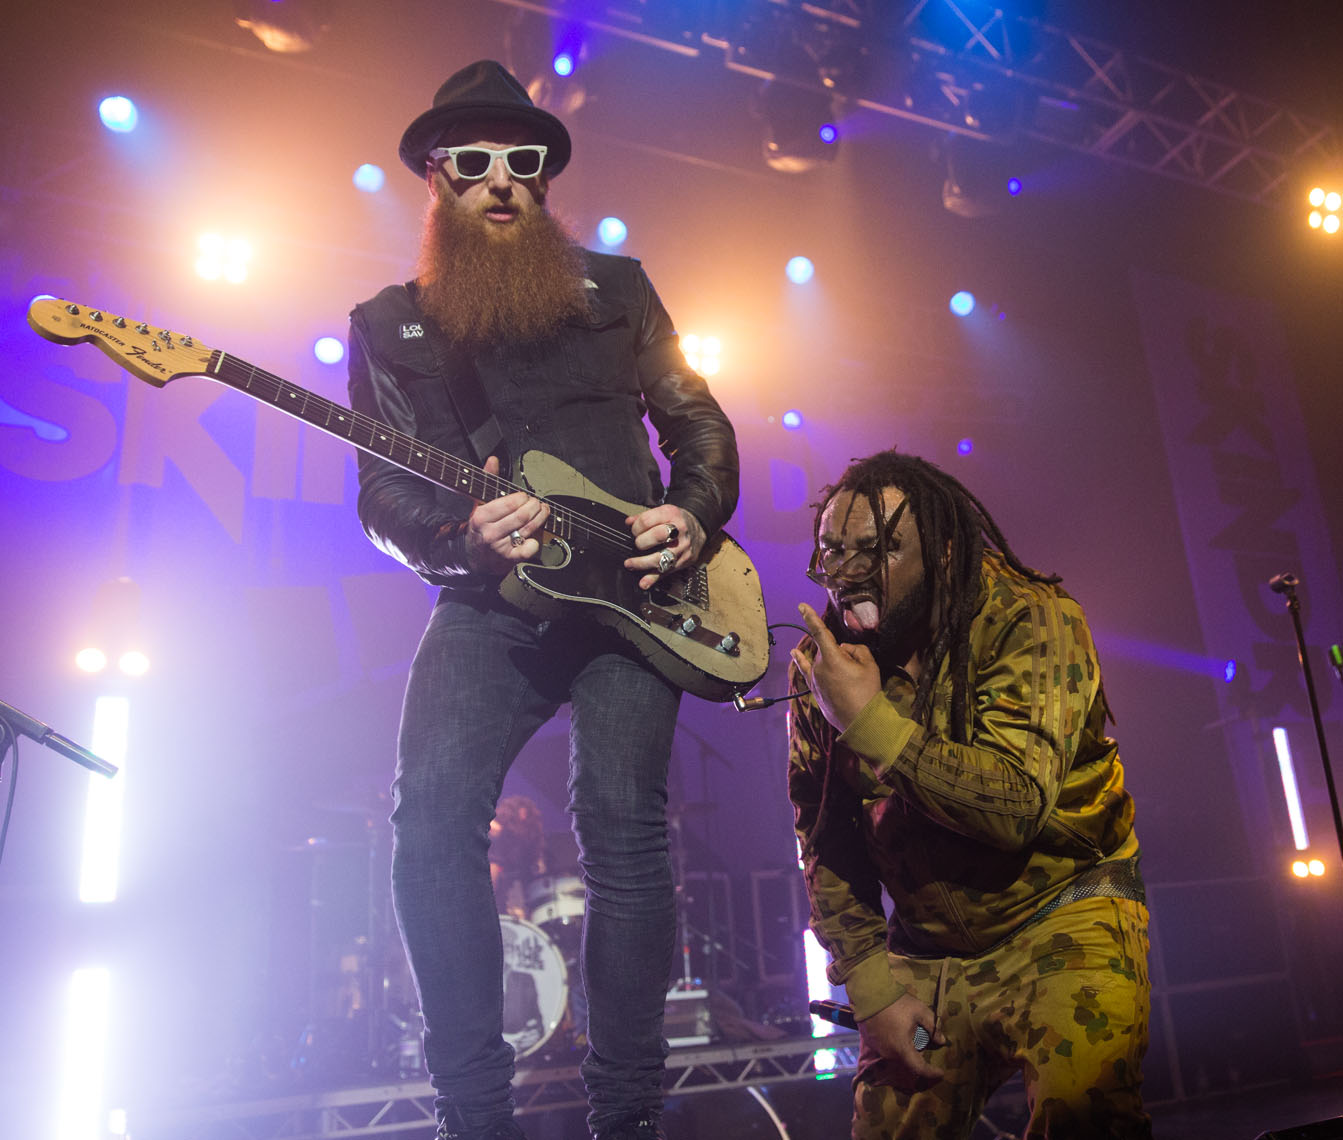 Skindred_London-2450-DUP.jpg